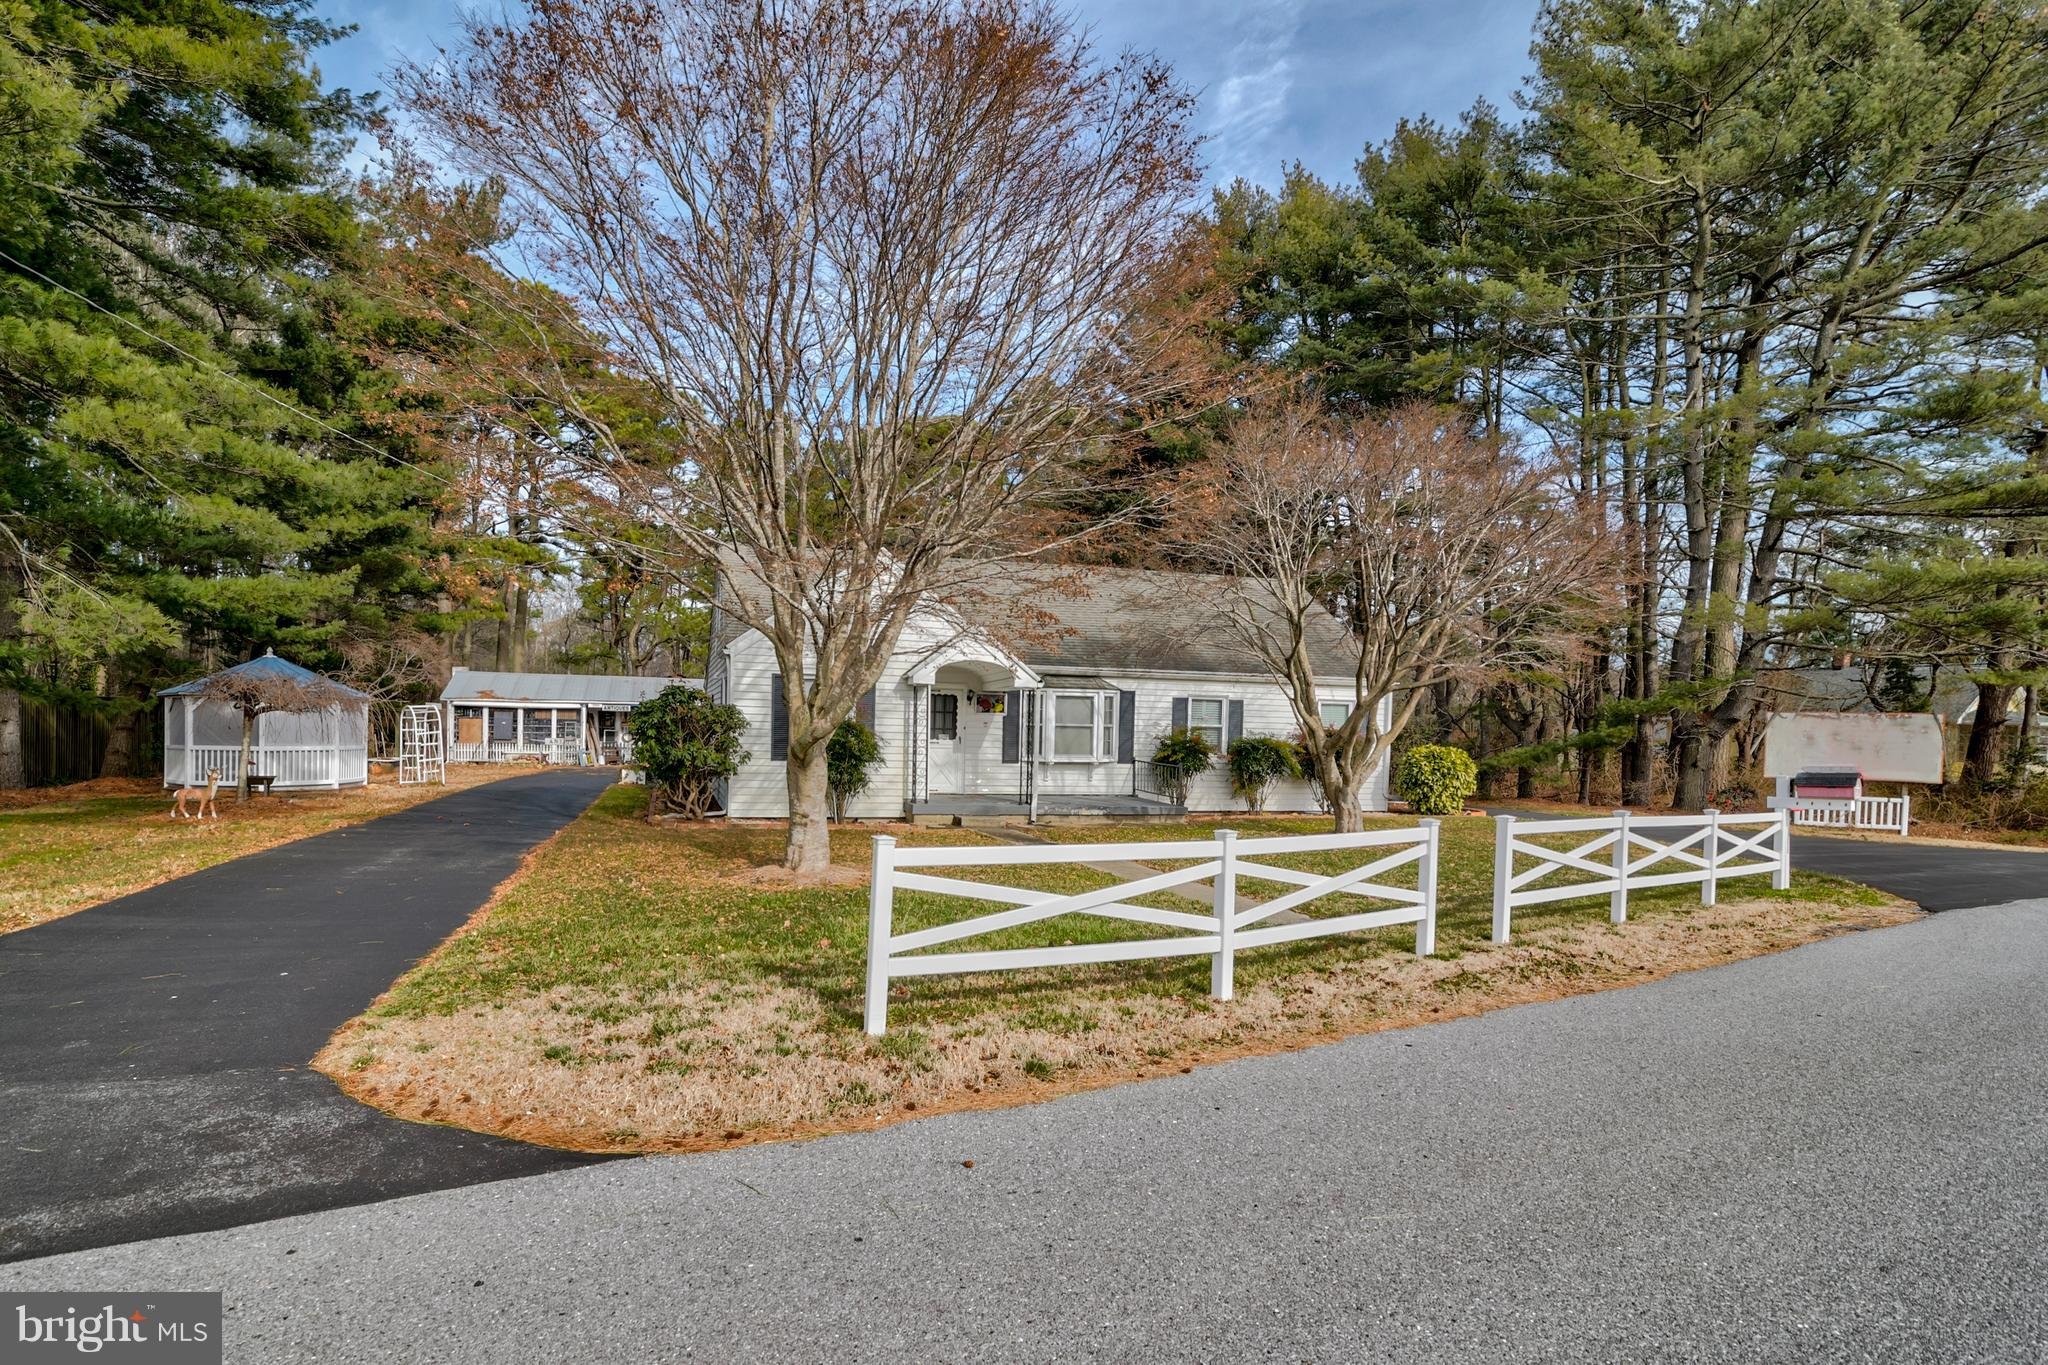 10009 SILVER POINT LANE, OCEAN CITY, MD 21842